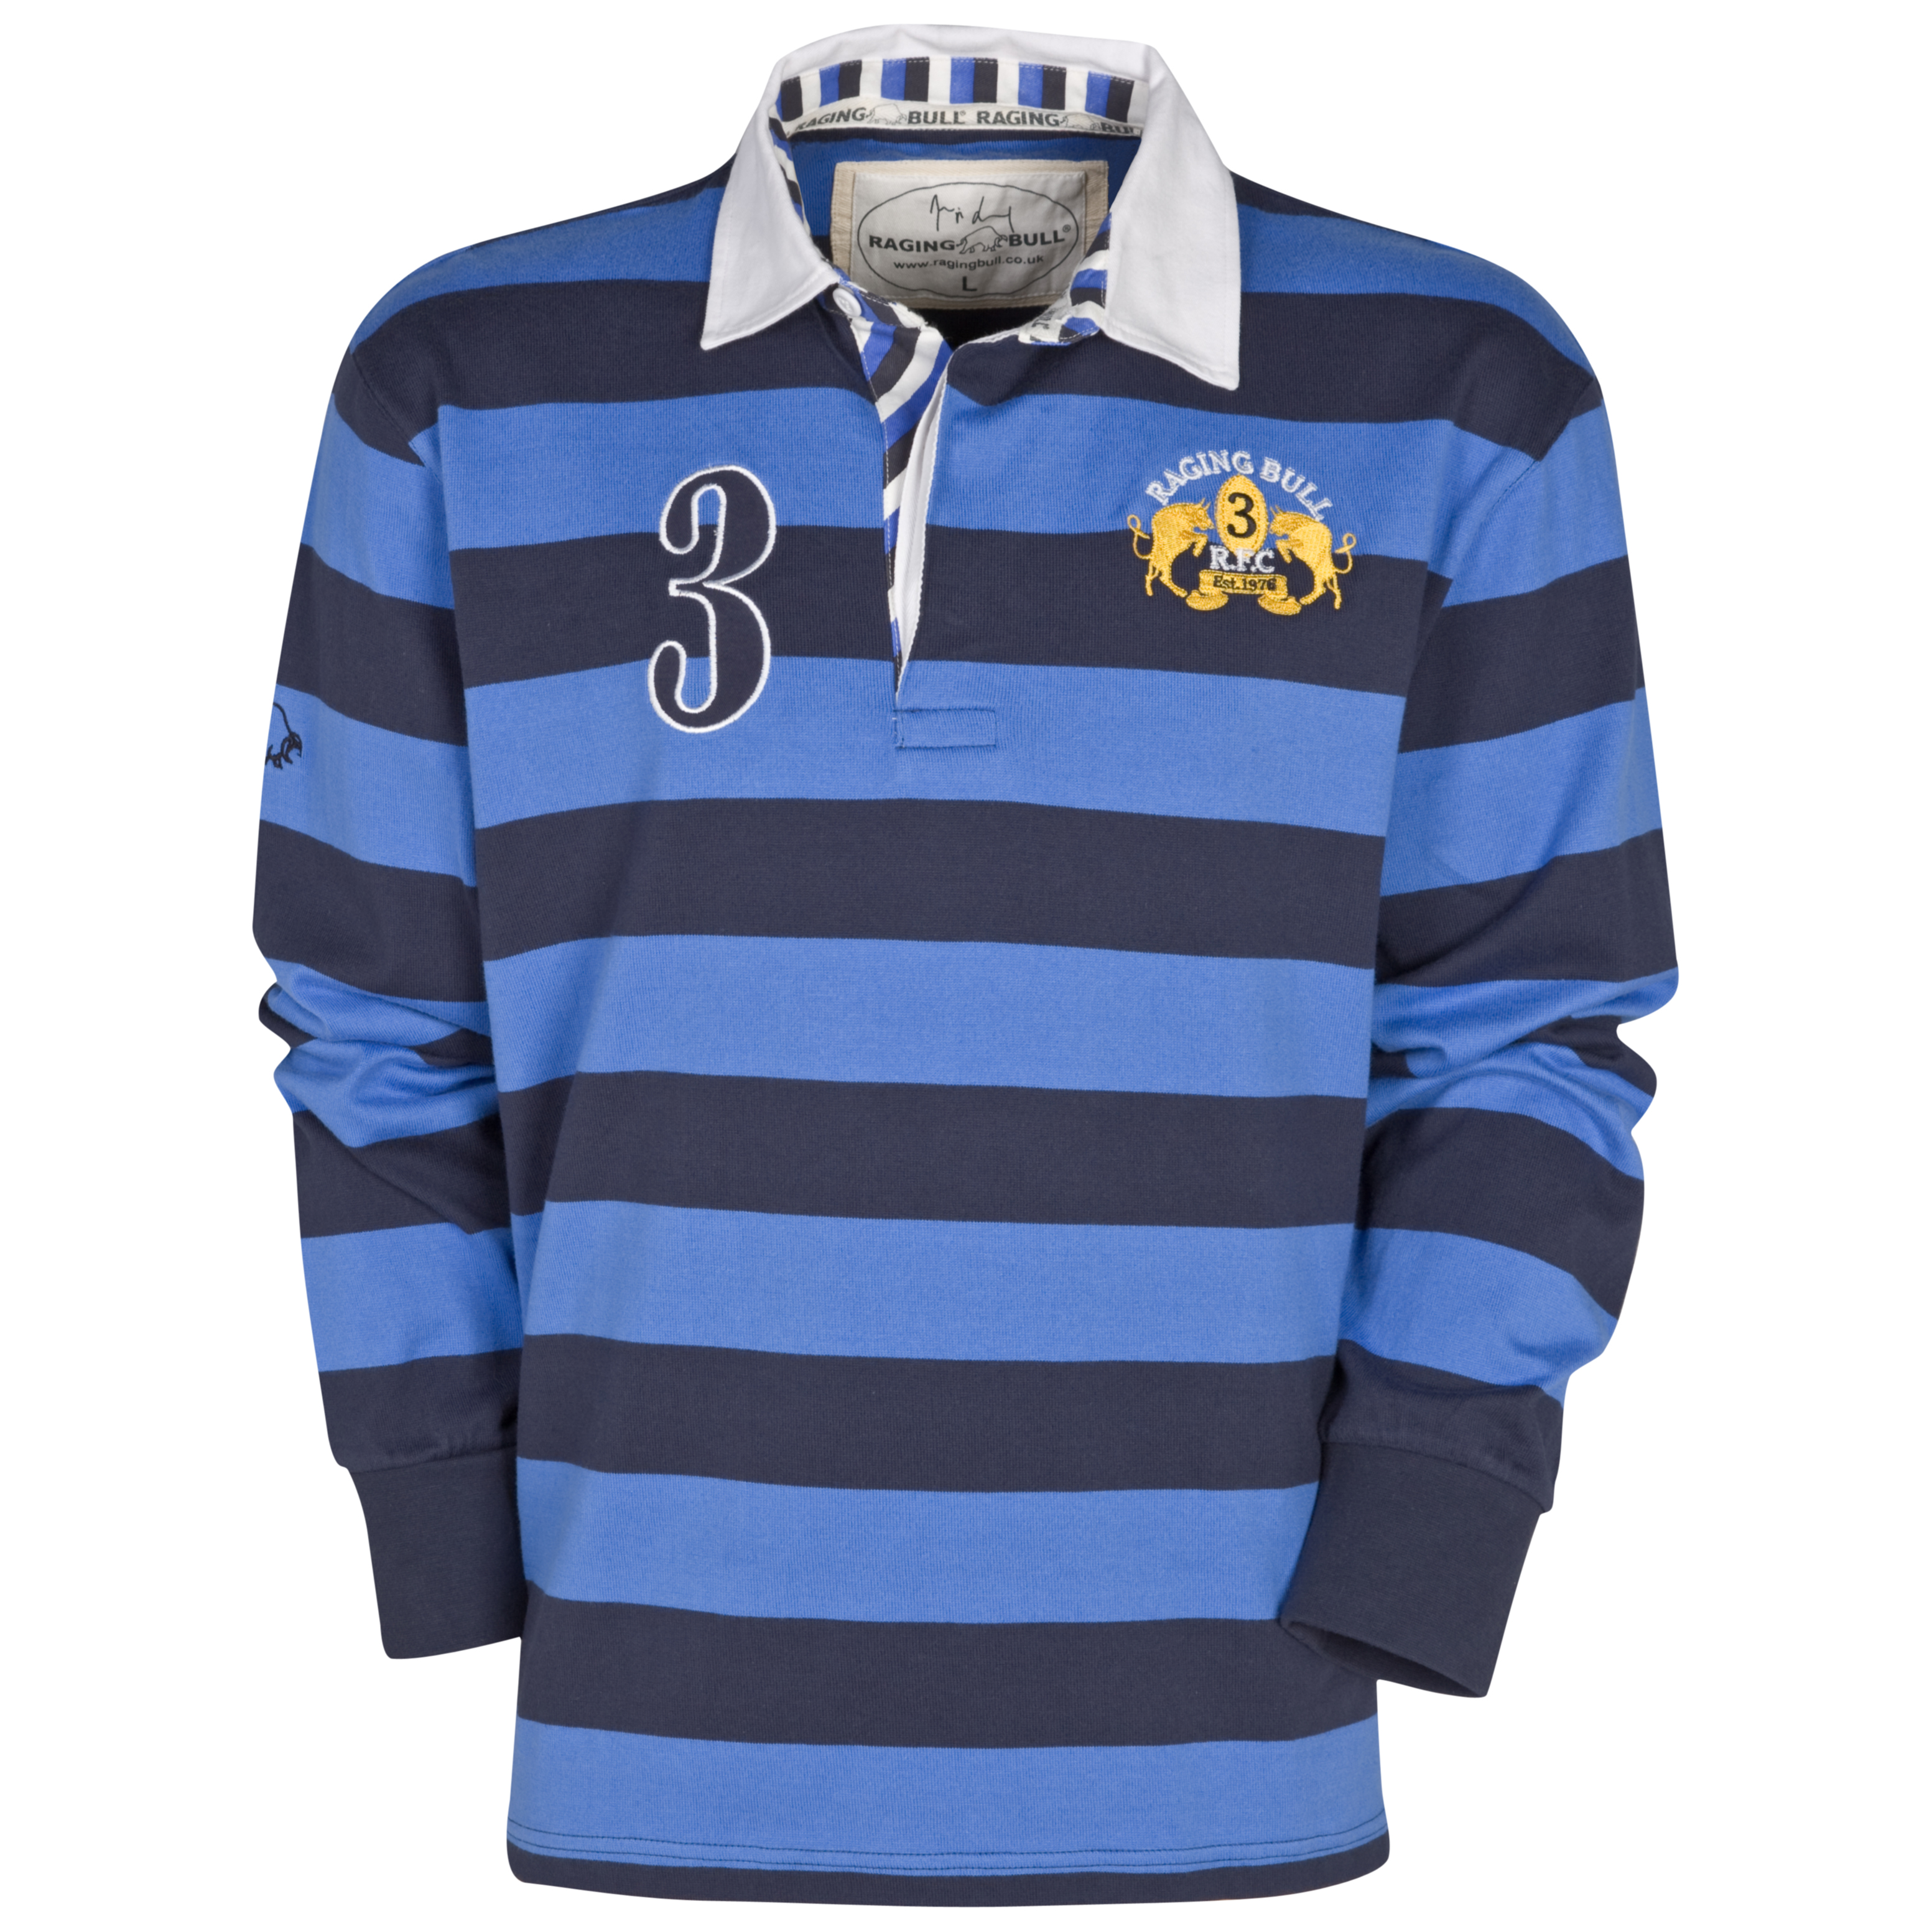 Raging Bull Striped Rugby Jersey - Navy/Cobalt. for 25€